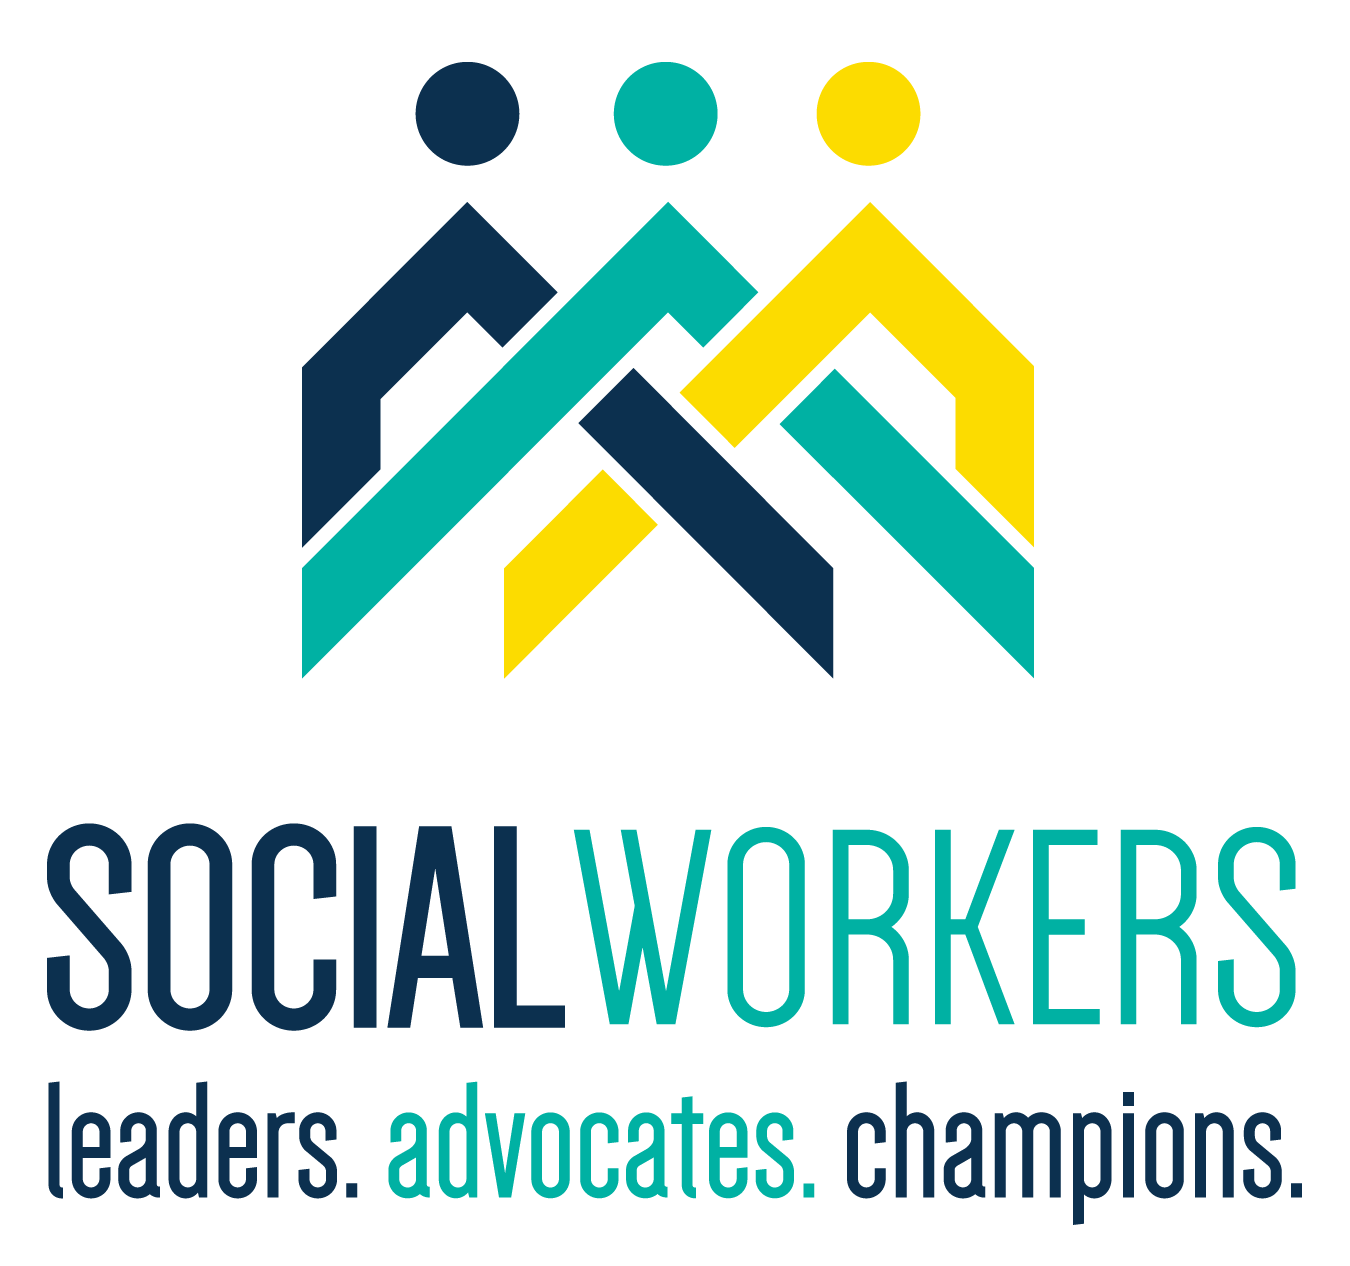 Social work month 2018 national association of social workers nc the official theme for social work month in march 2018 is social workers leaders advocates champions 1betcityfo Gallery